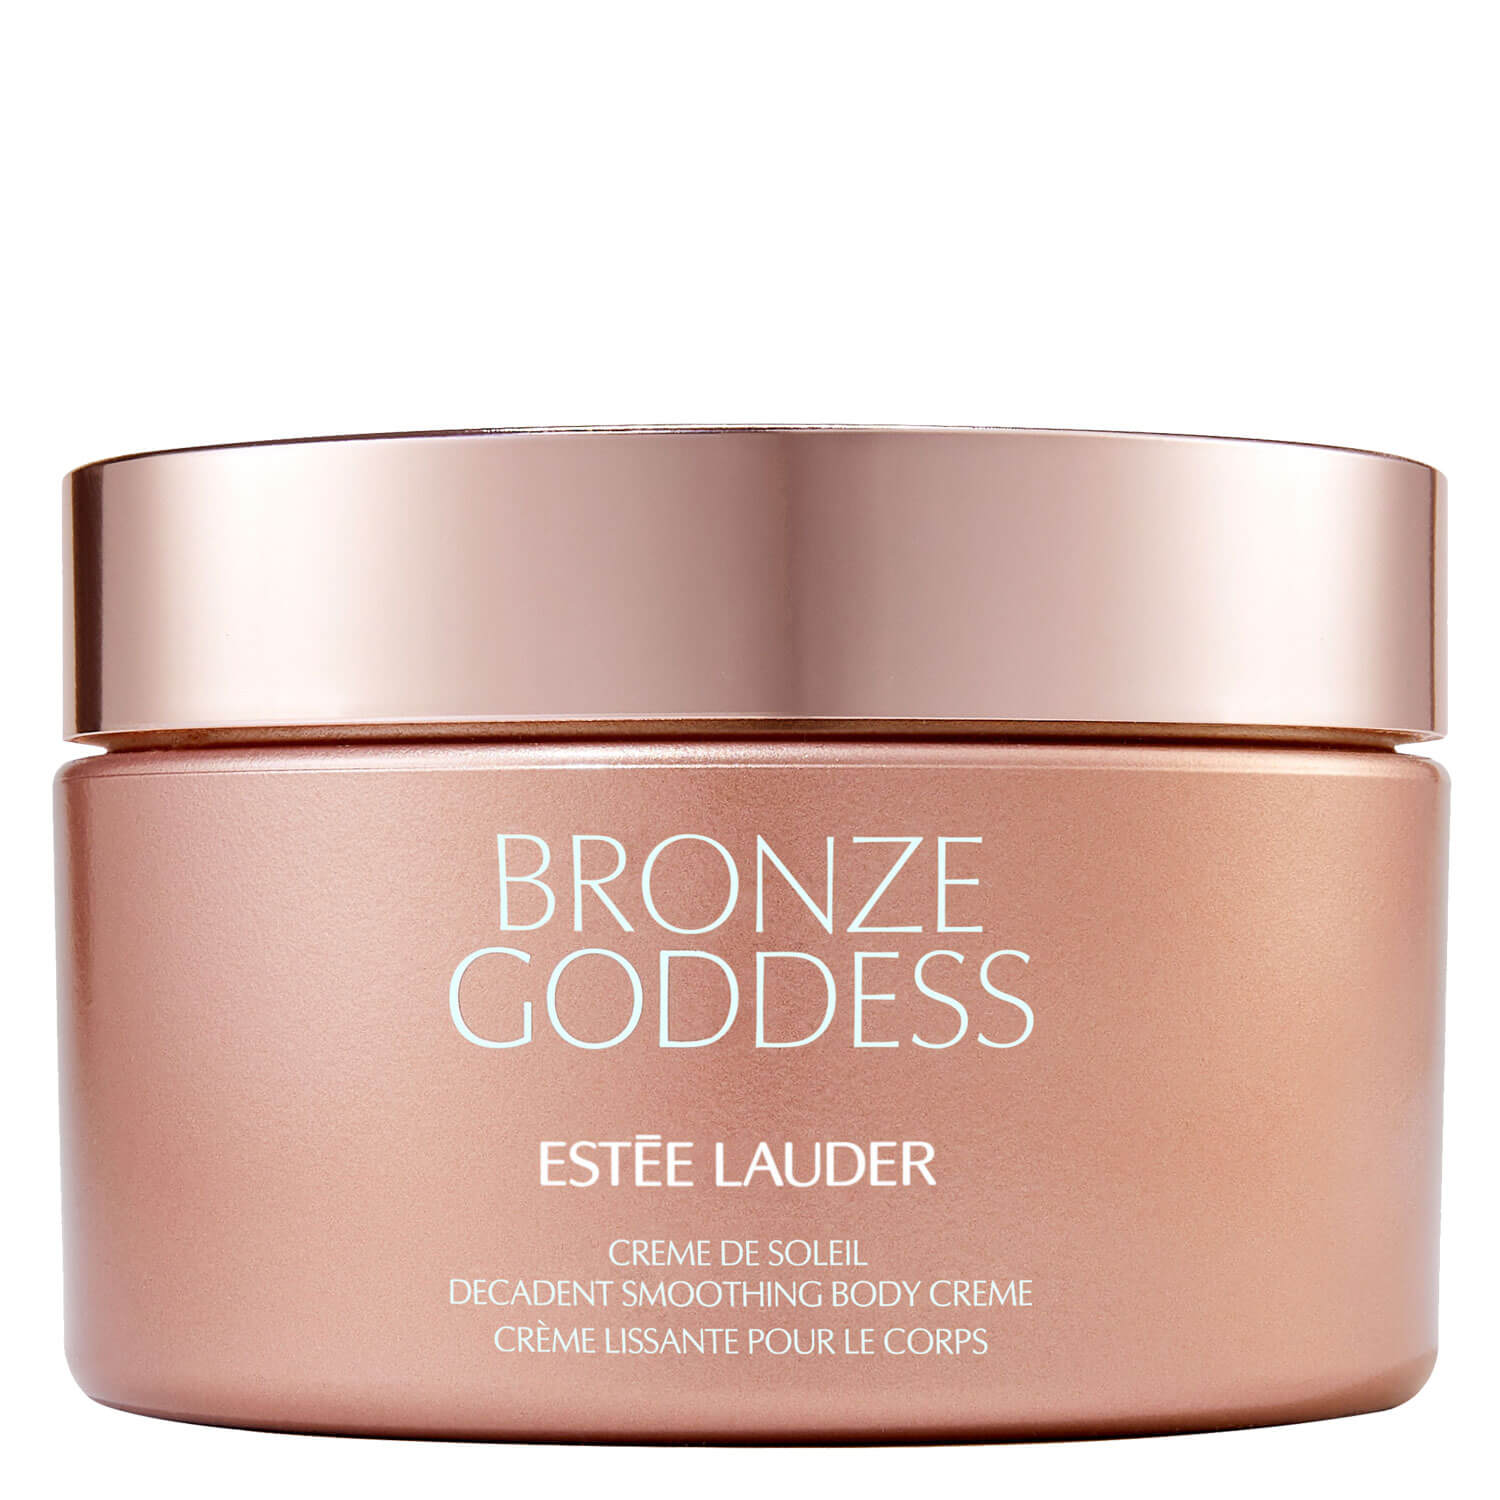 Bronze Goddess - Creme de Soleil Decadent Smoothing Body Creme